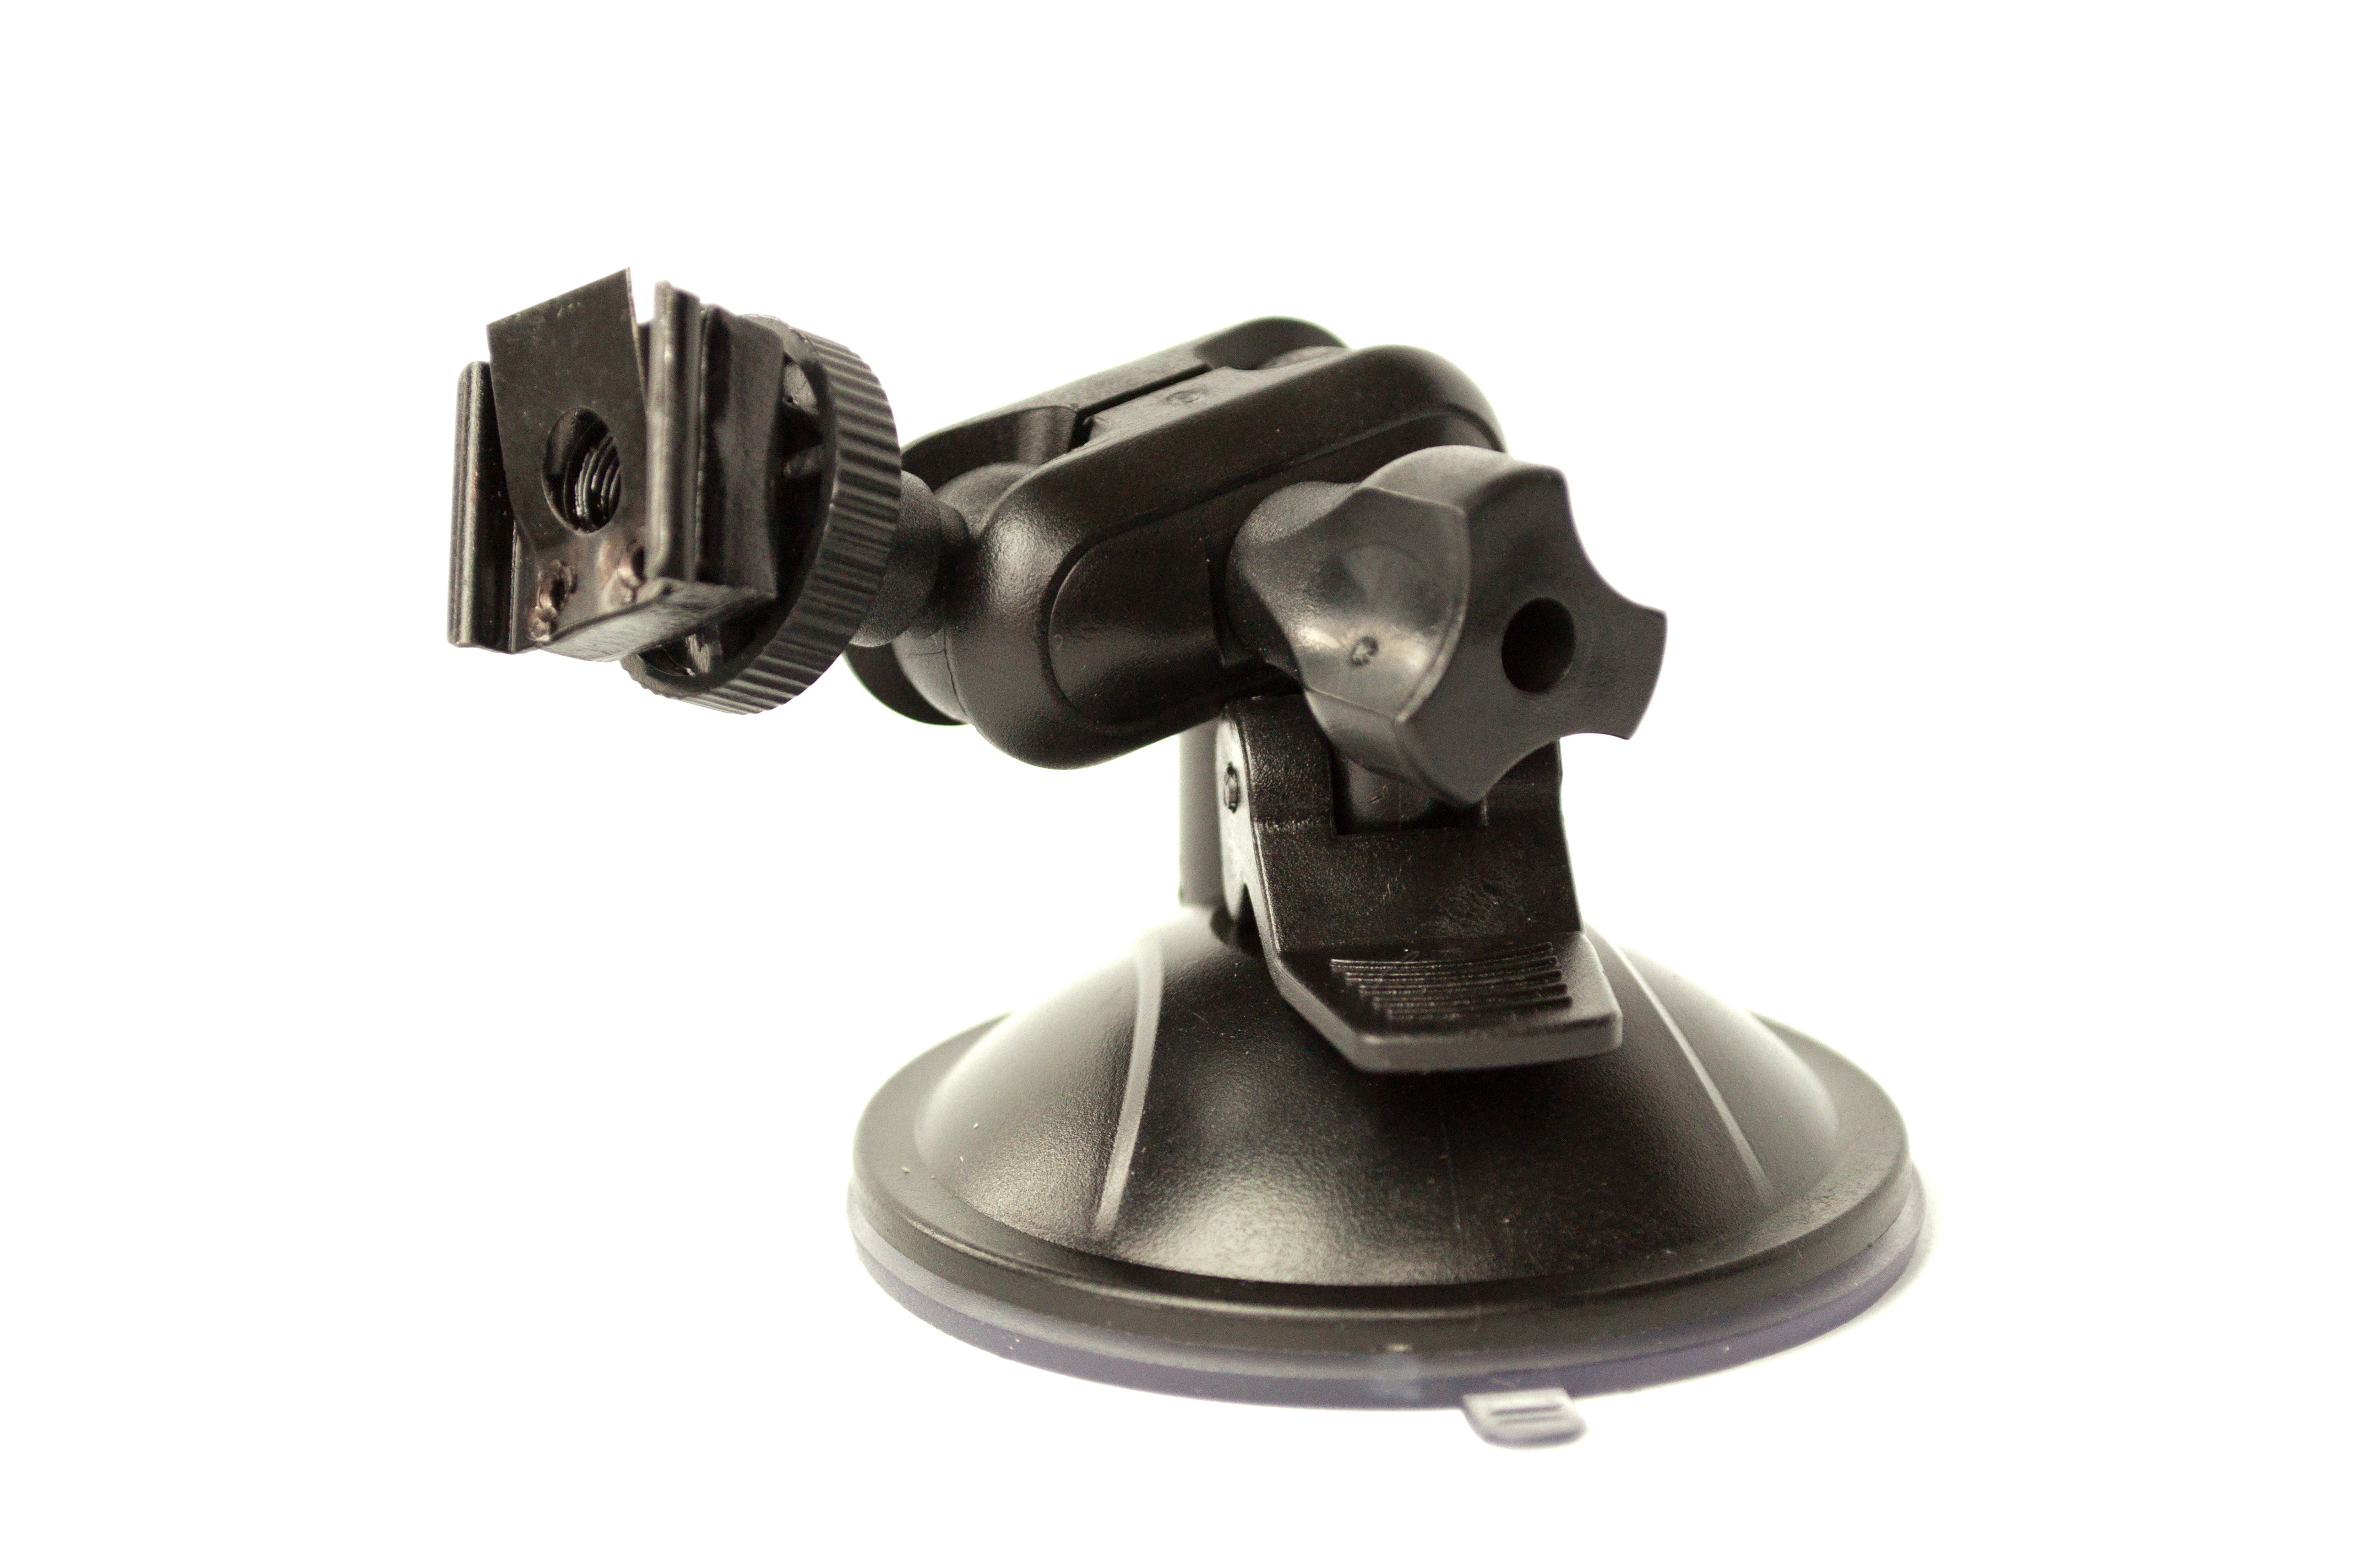 PatrolEyes GPS Suction Cup Mount for SC-DV5 DV5-2 SC-DV6